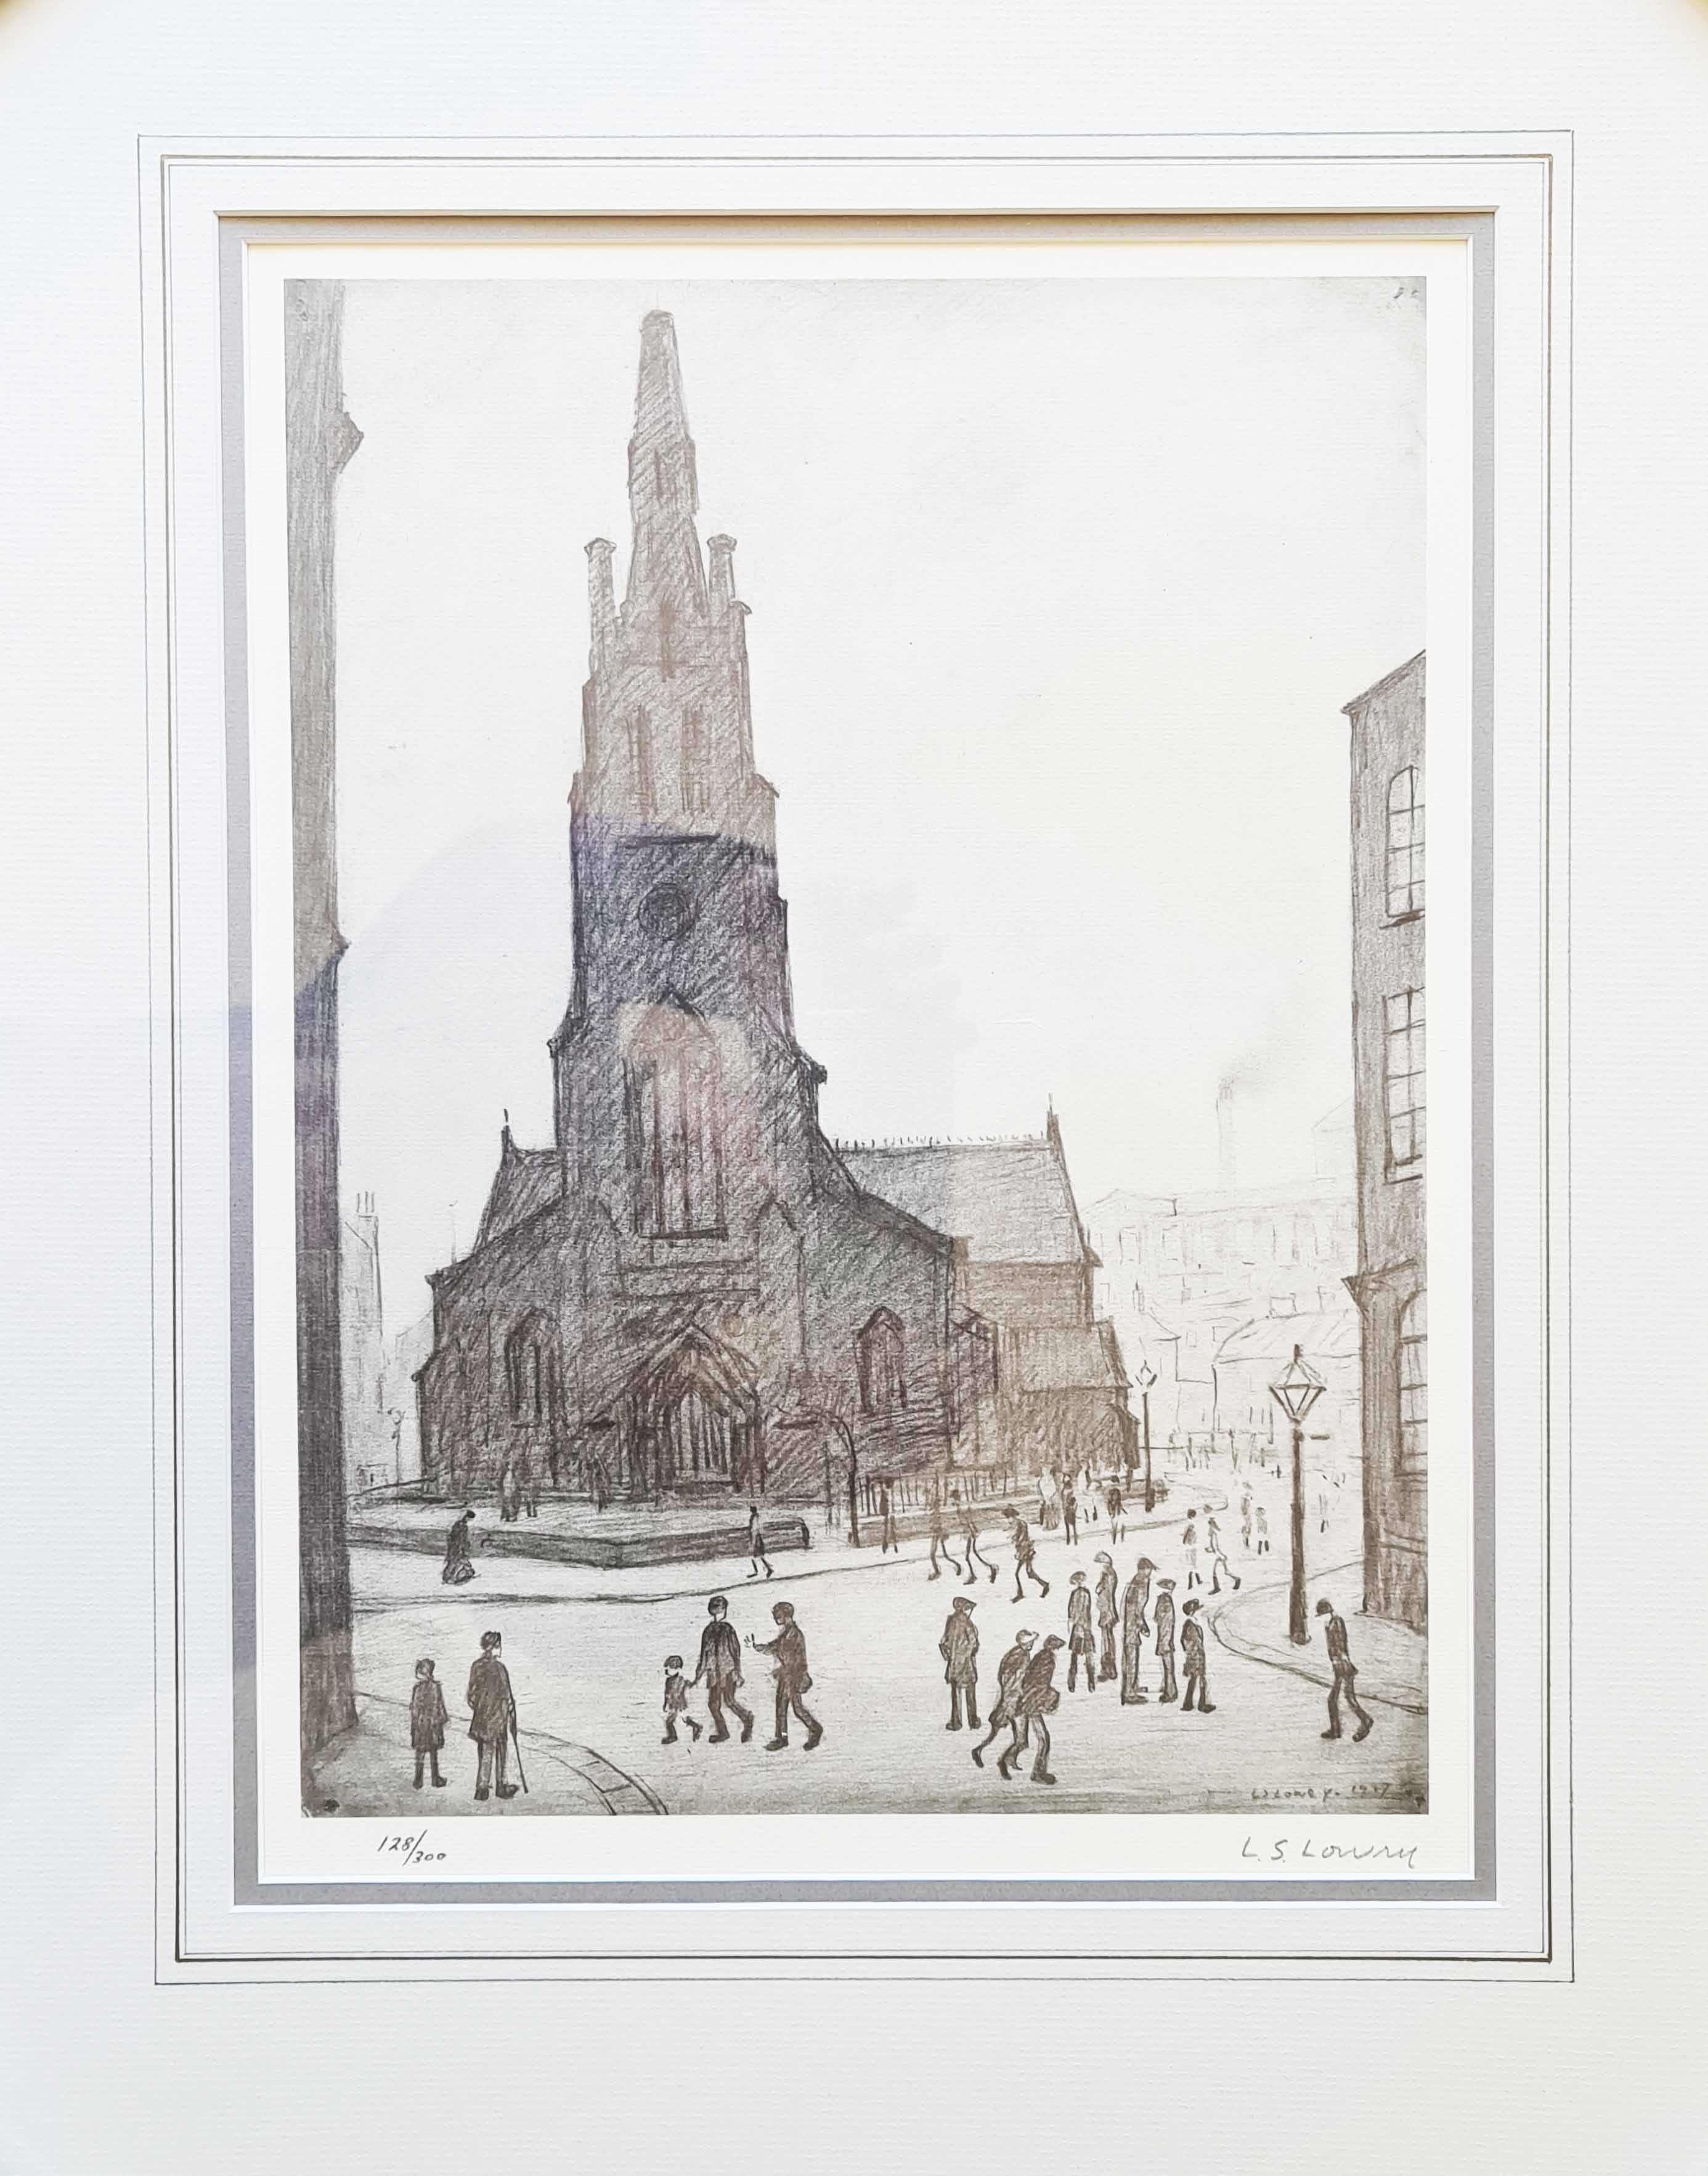 lowry st. simon's church mounted